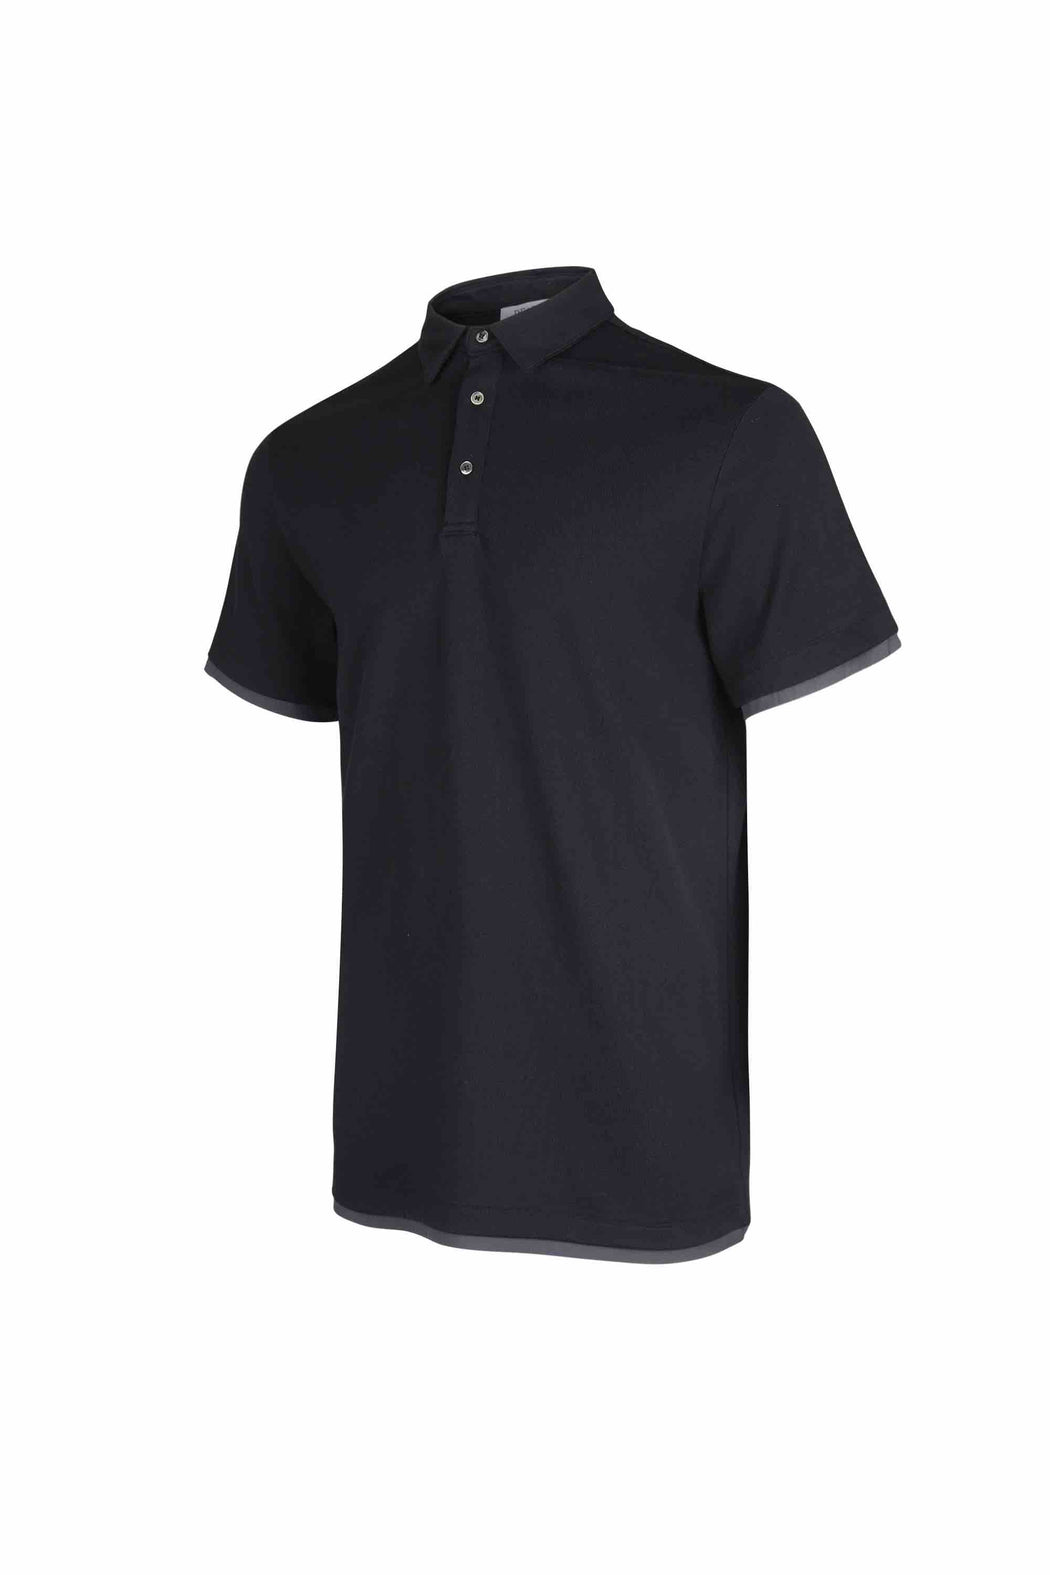 Side view of Men Contrast Polo Shirt, made with Organic Cotton in Black